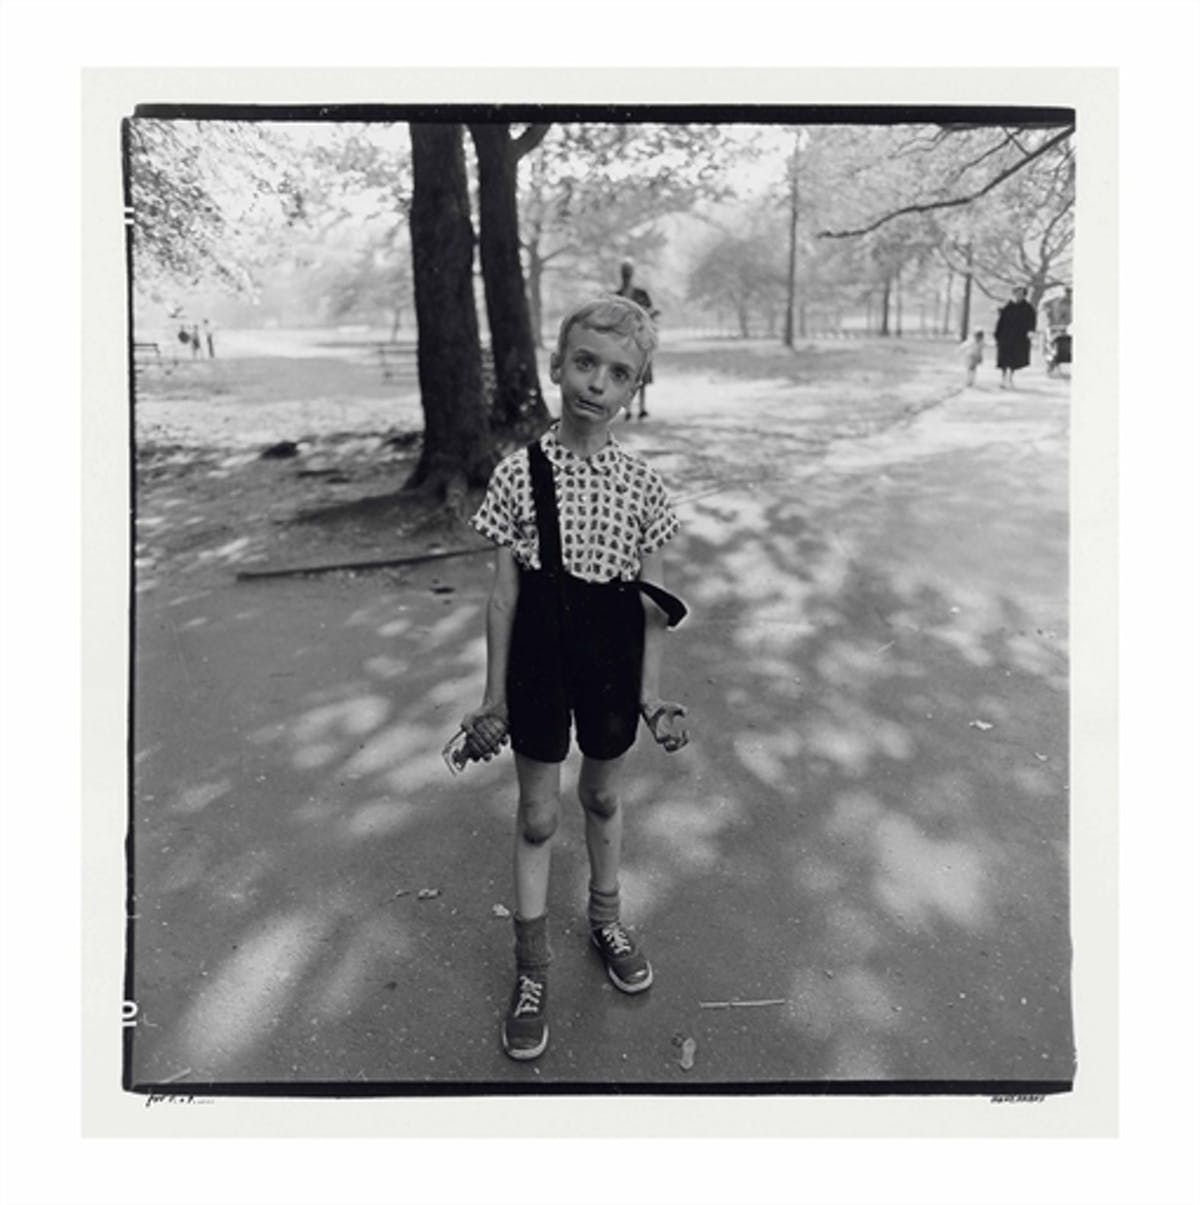 Diane Arbus, 'Child with a Toy Hand Grenade in Central Park, NYC, 1962'. Photo: Christie's